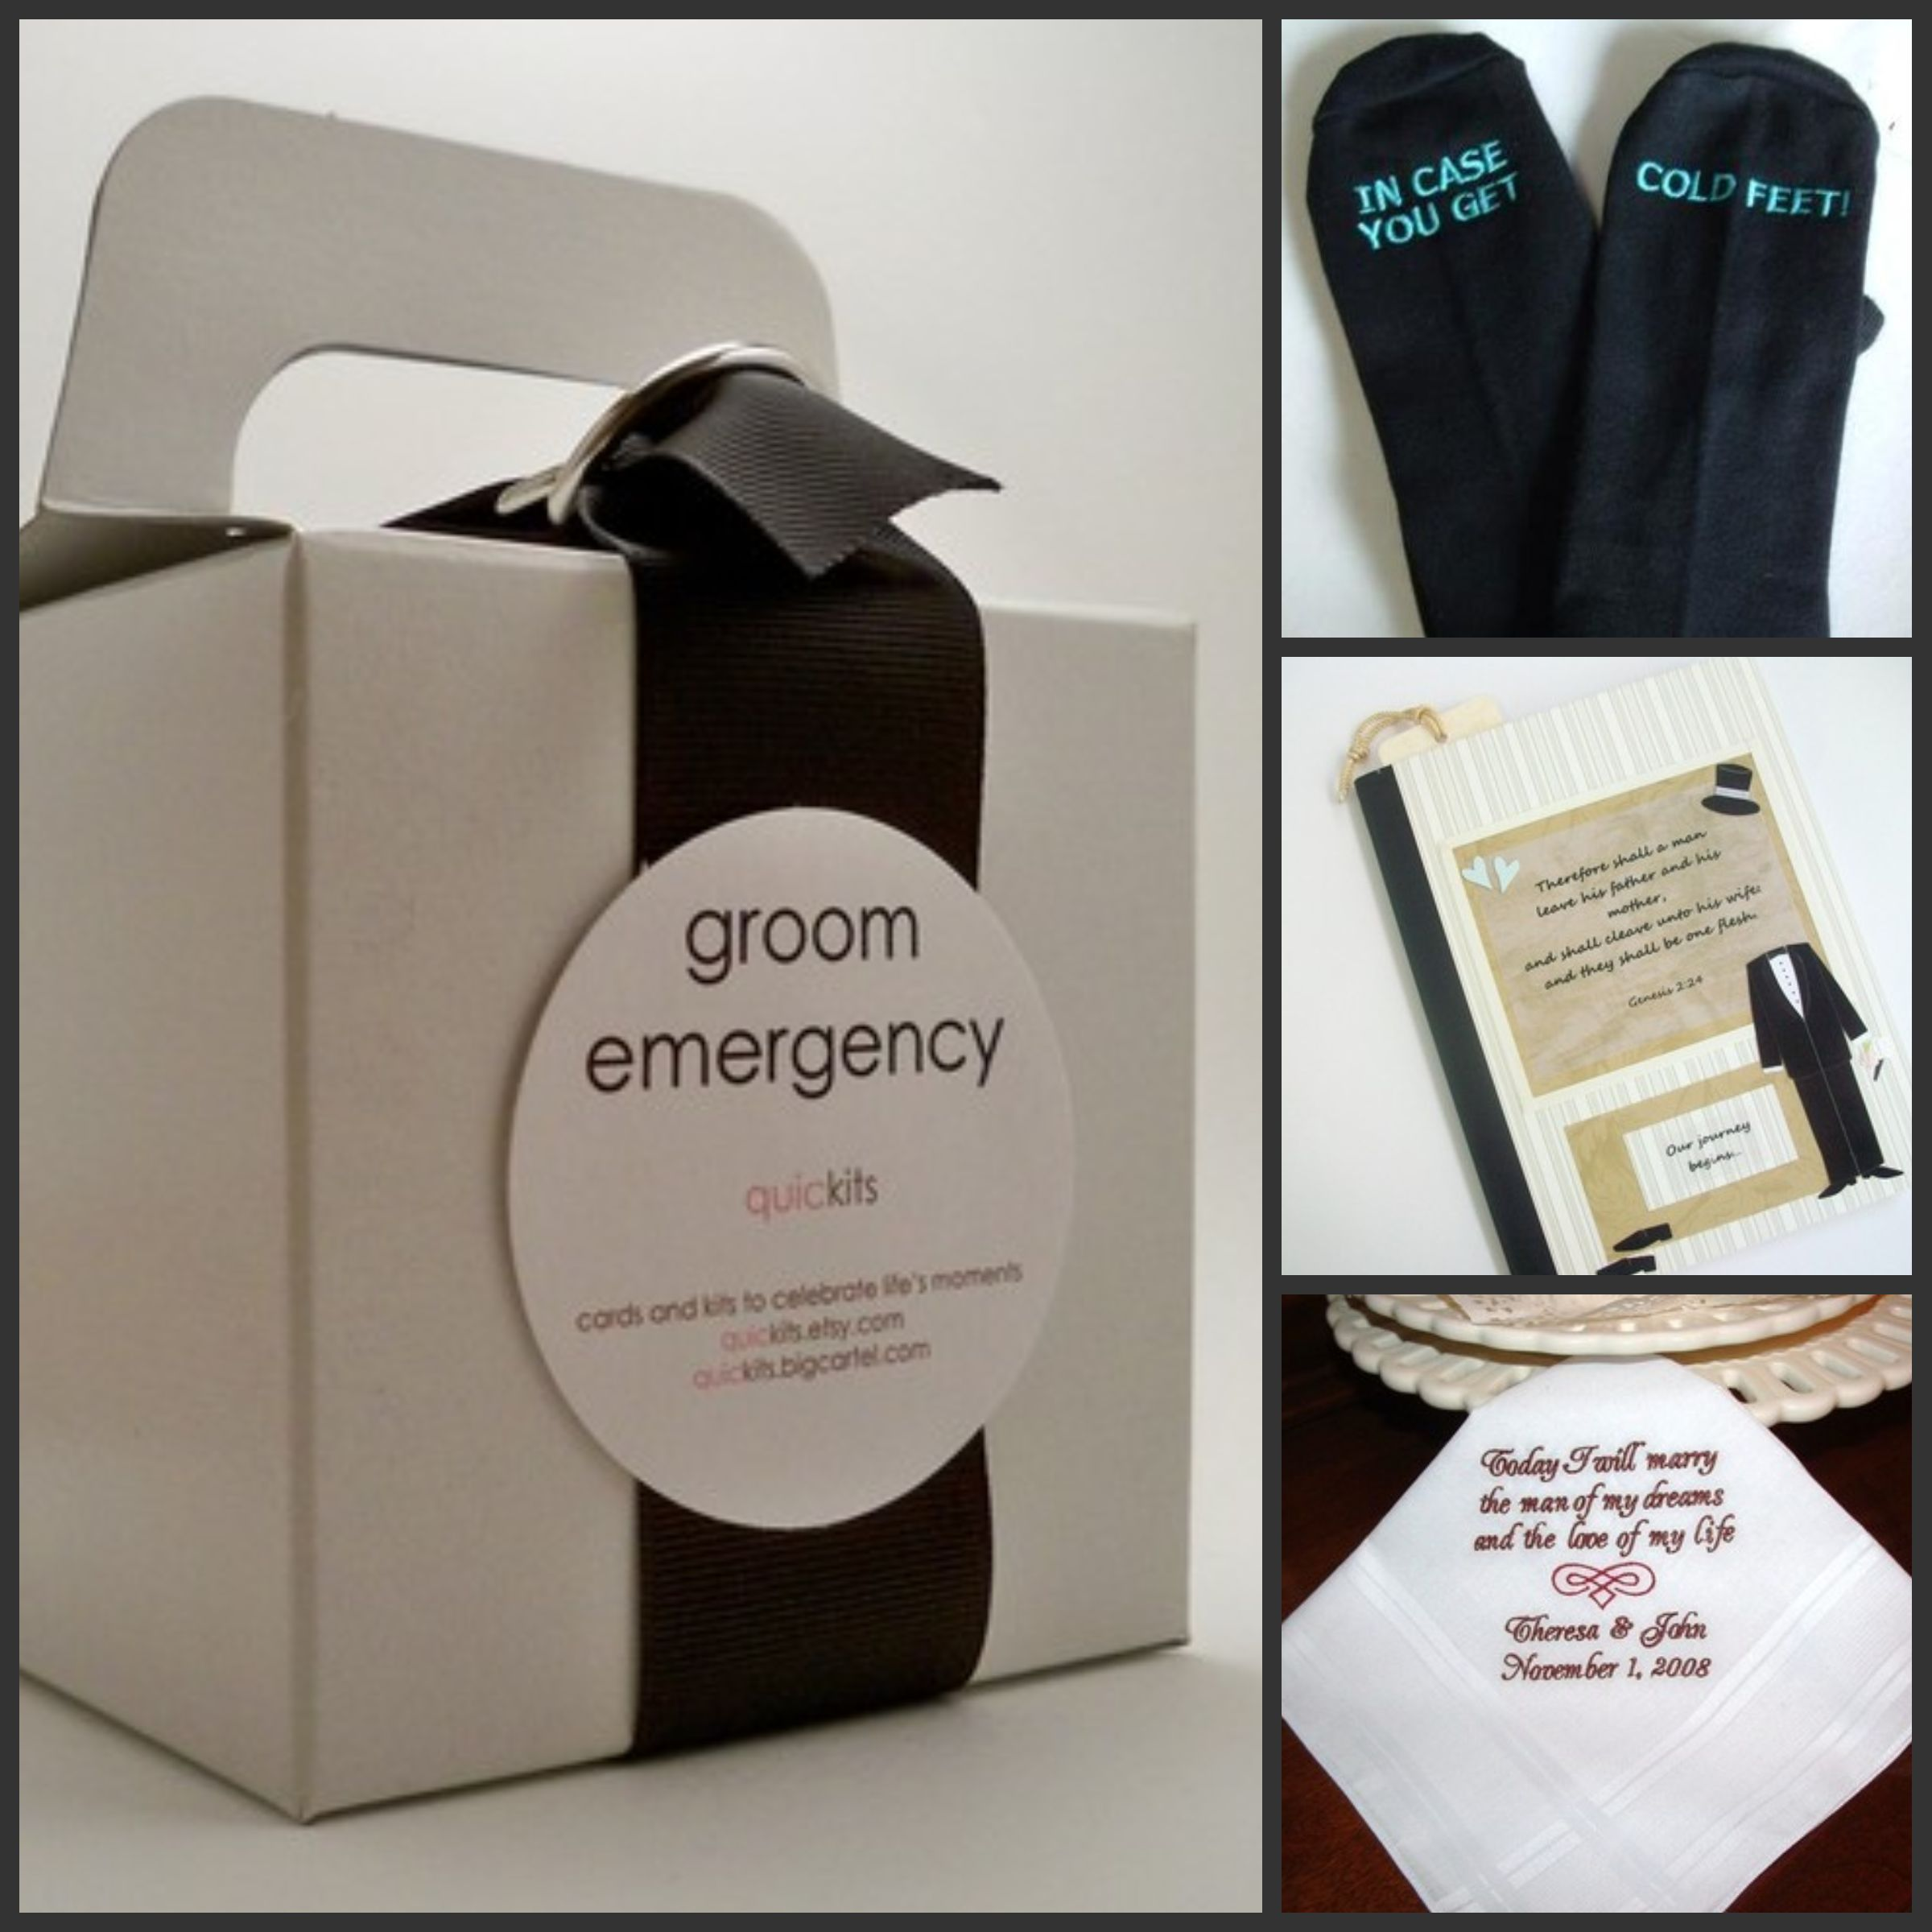 Unusual Wedding Gifts For Bride And Groom Suggestions : personal gifts for your groom clockwise from left groom emergency kit ...